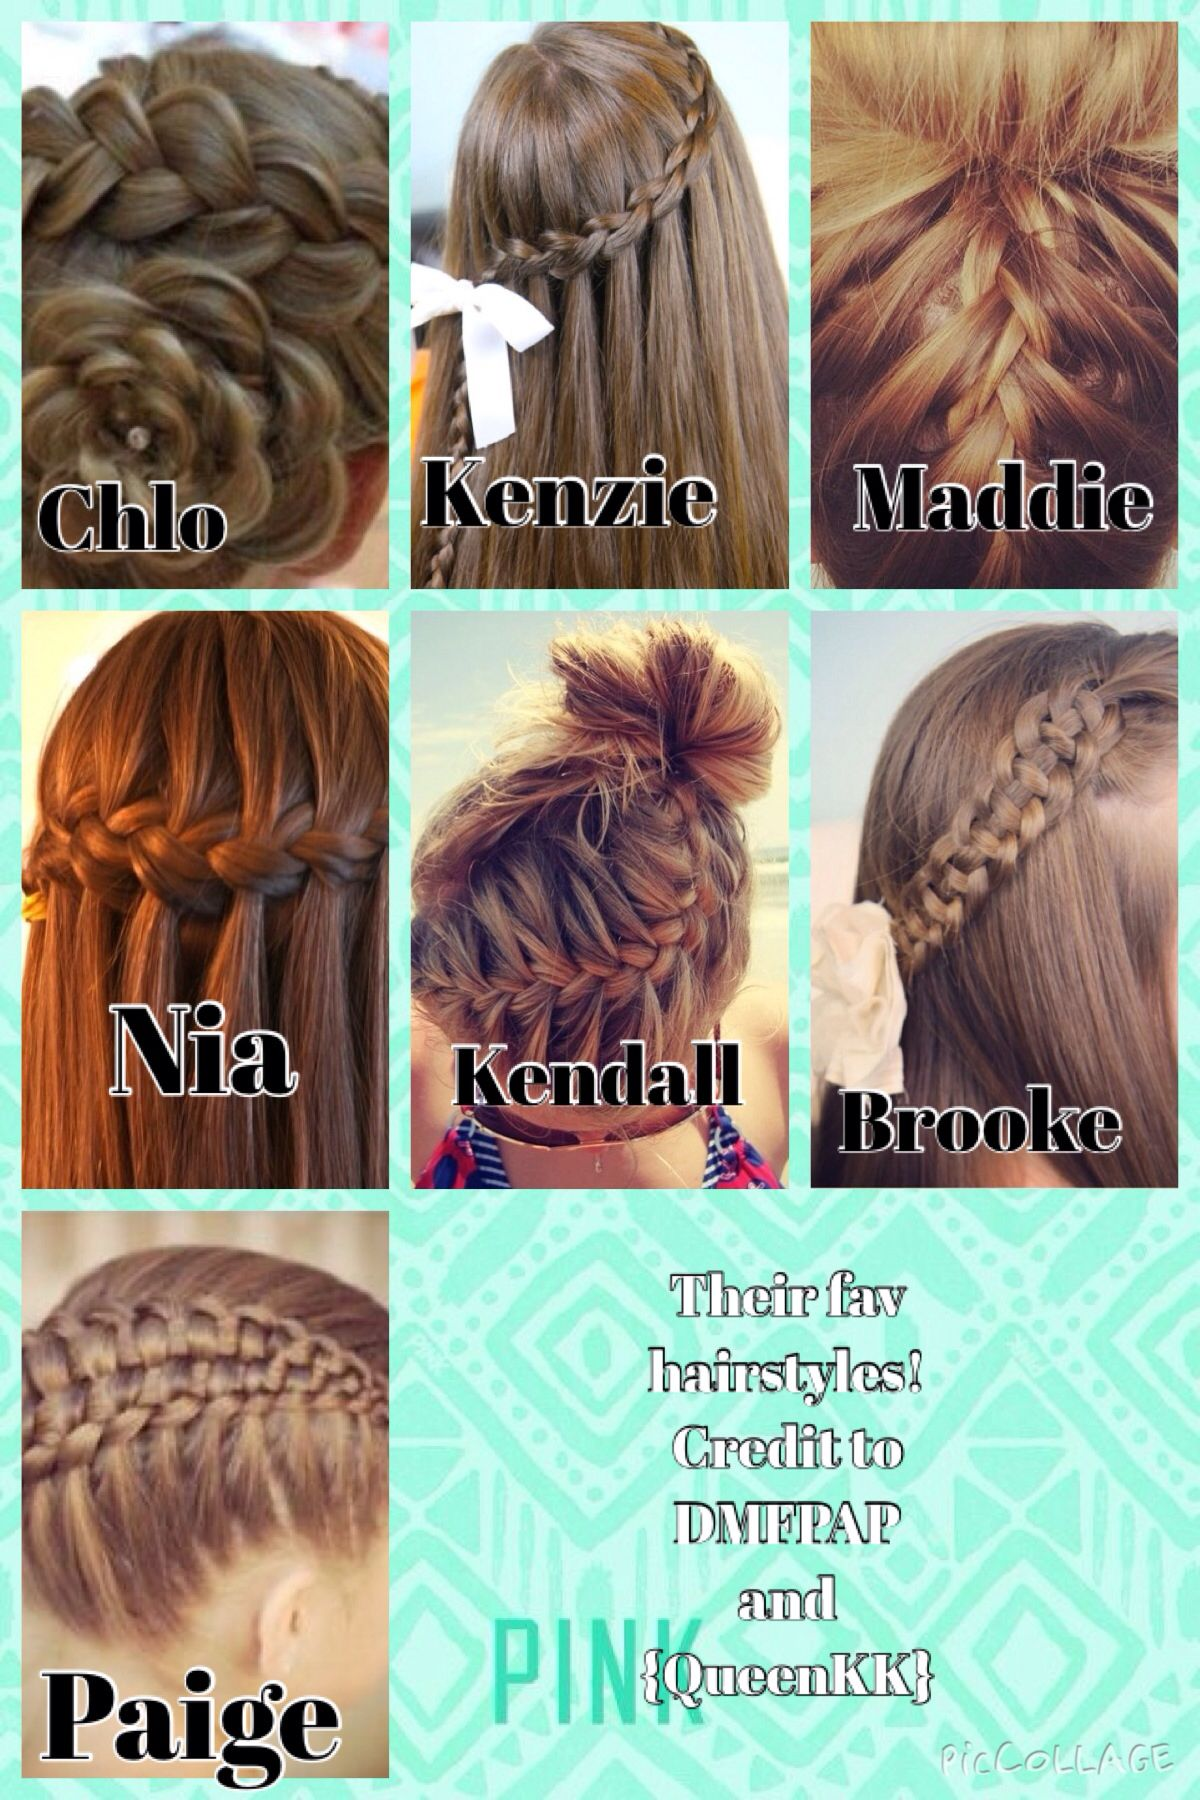 Comment down below which one of their favourite hairstyles you like